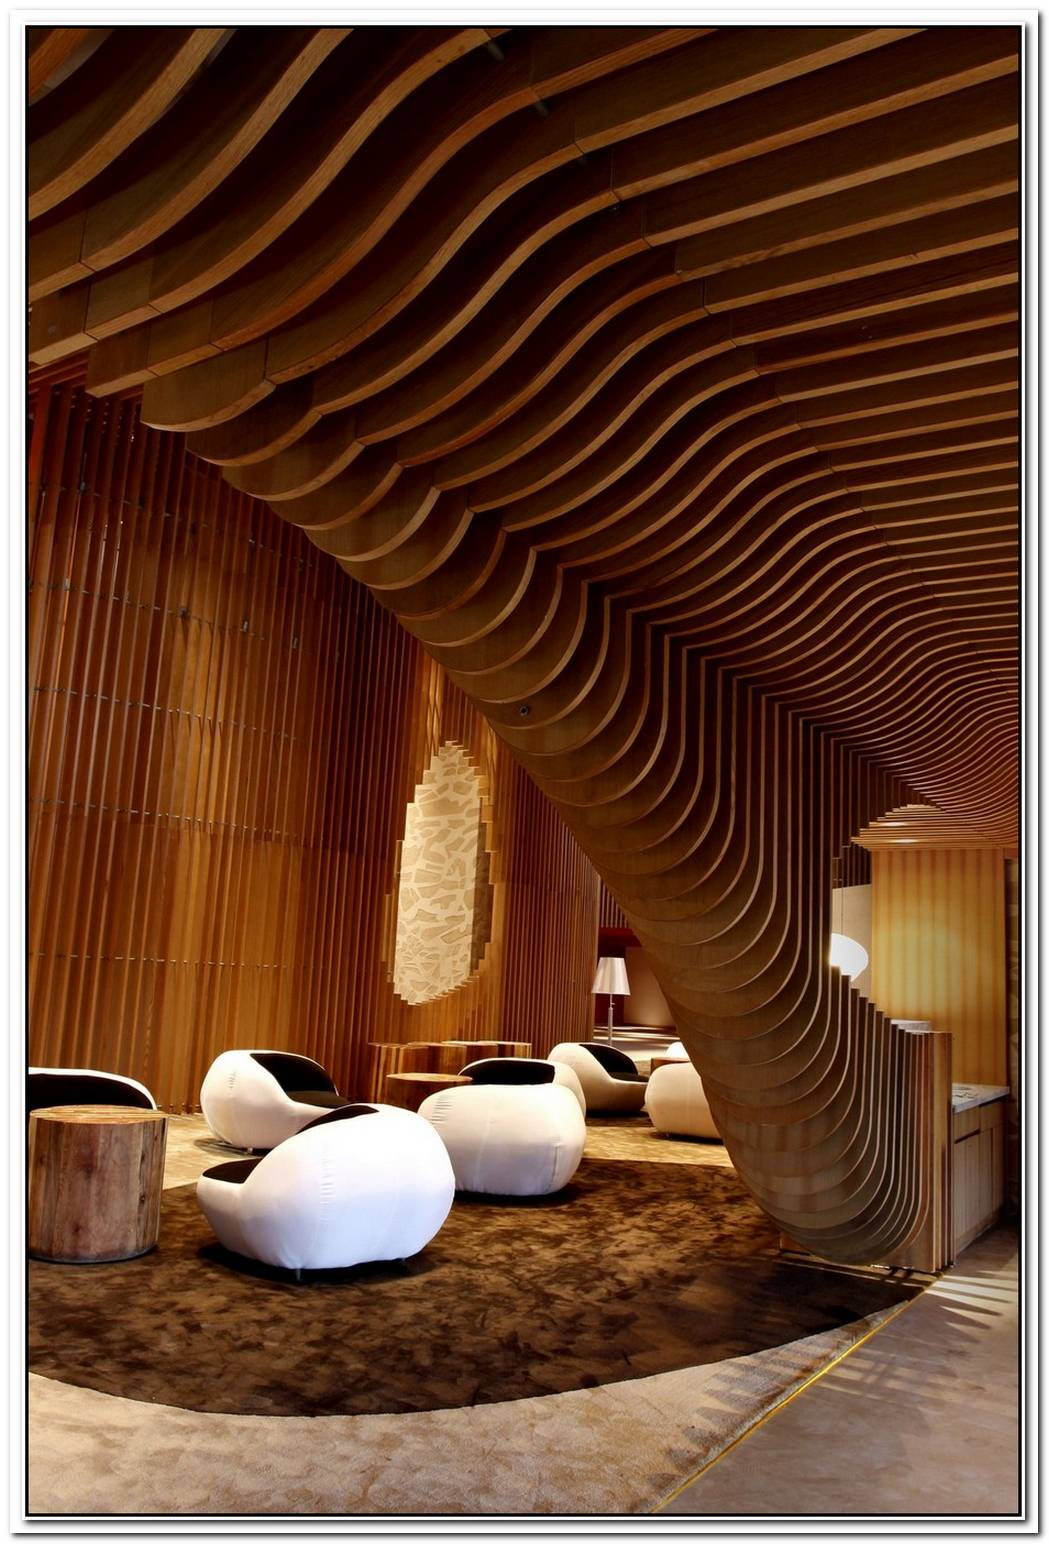 The Beautiful Wooden Interior Of Tianxi Oriental Club